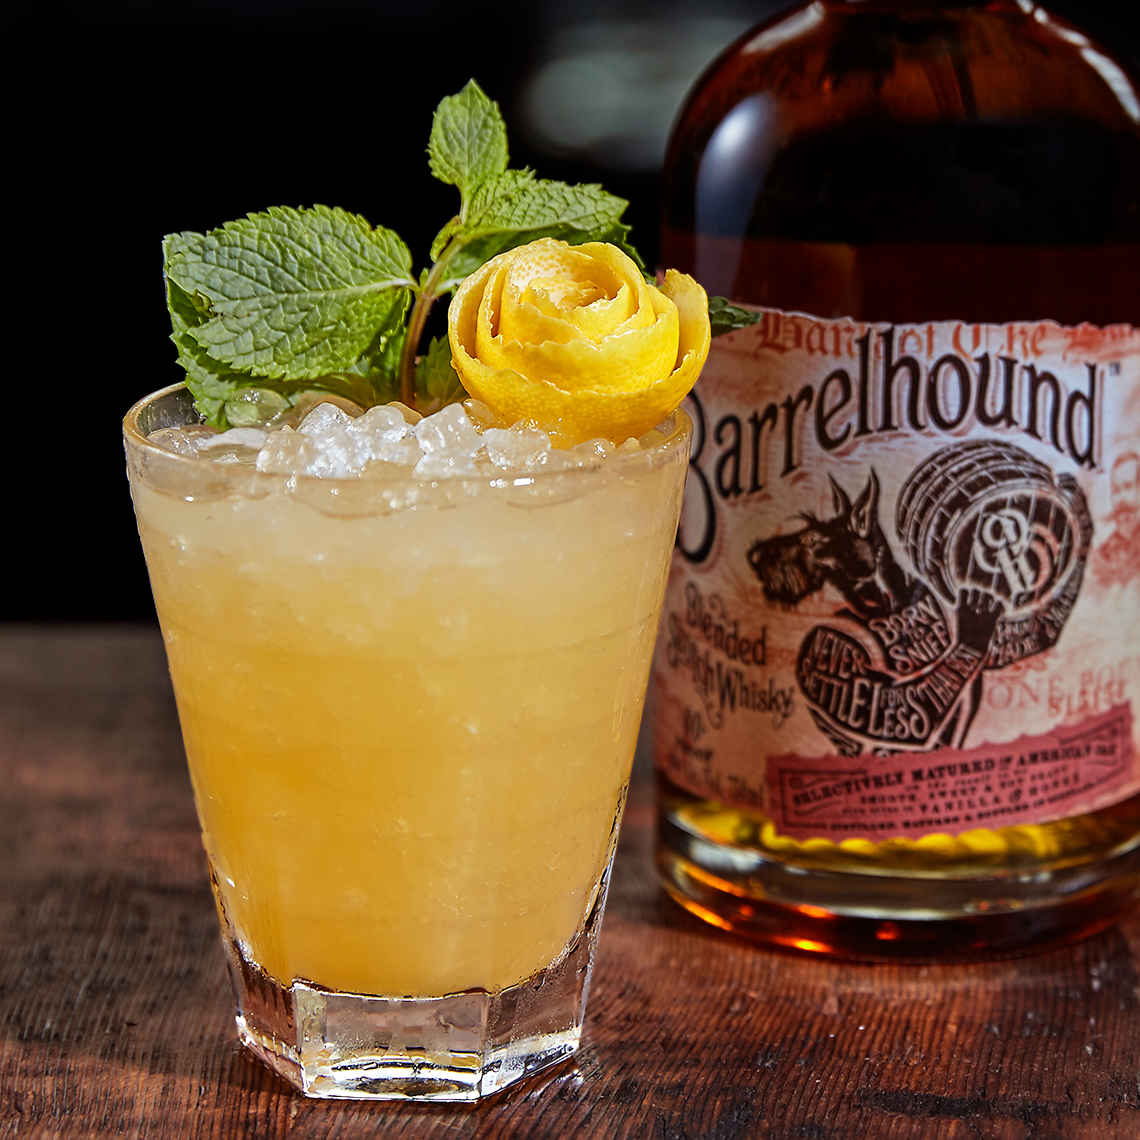 barrelhound_tiki